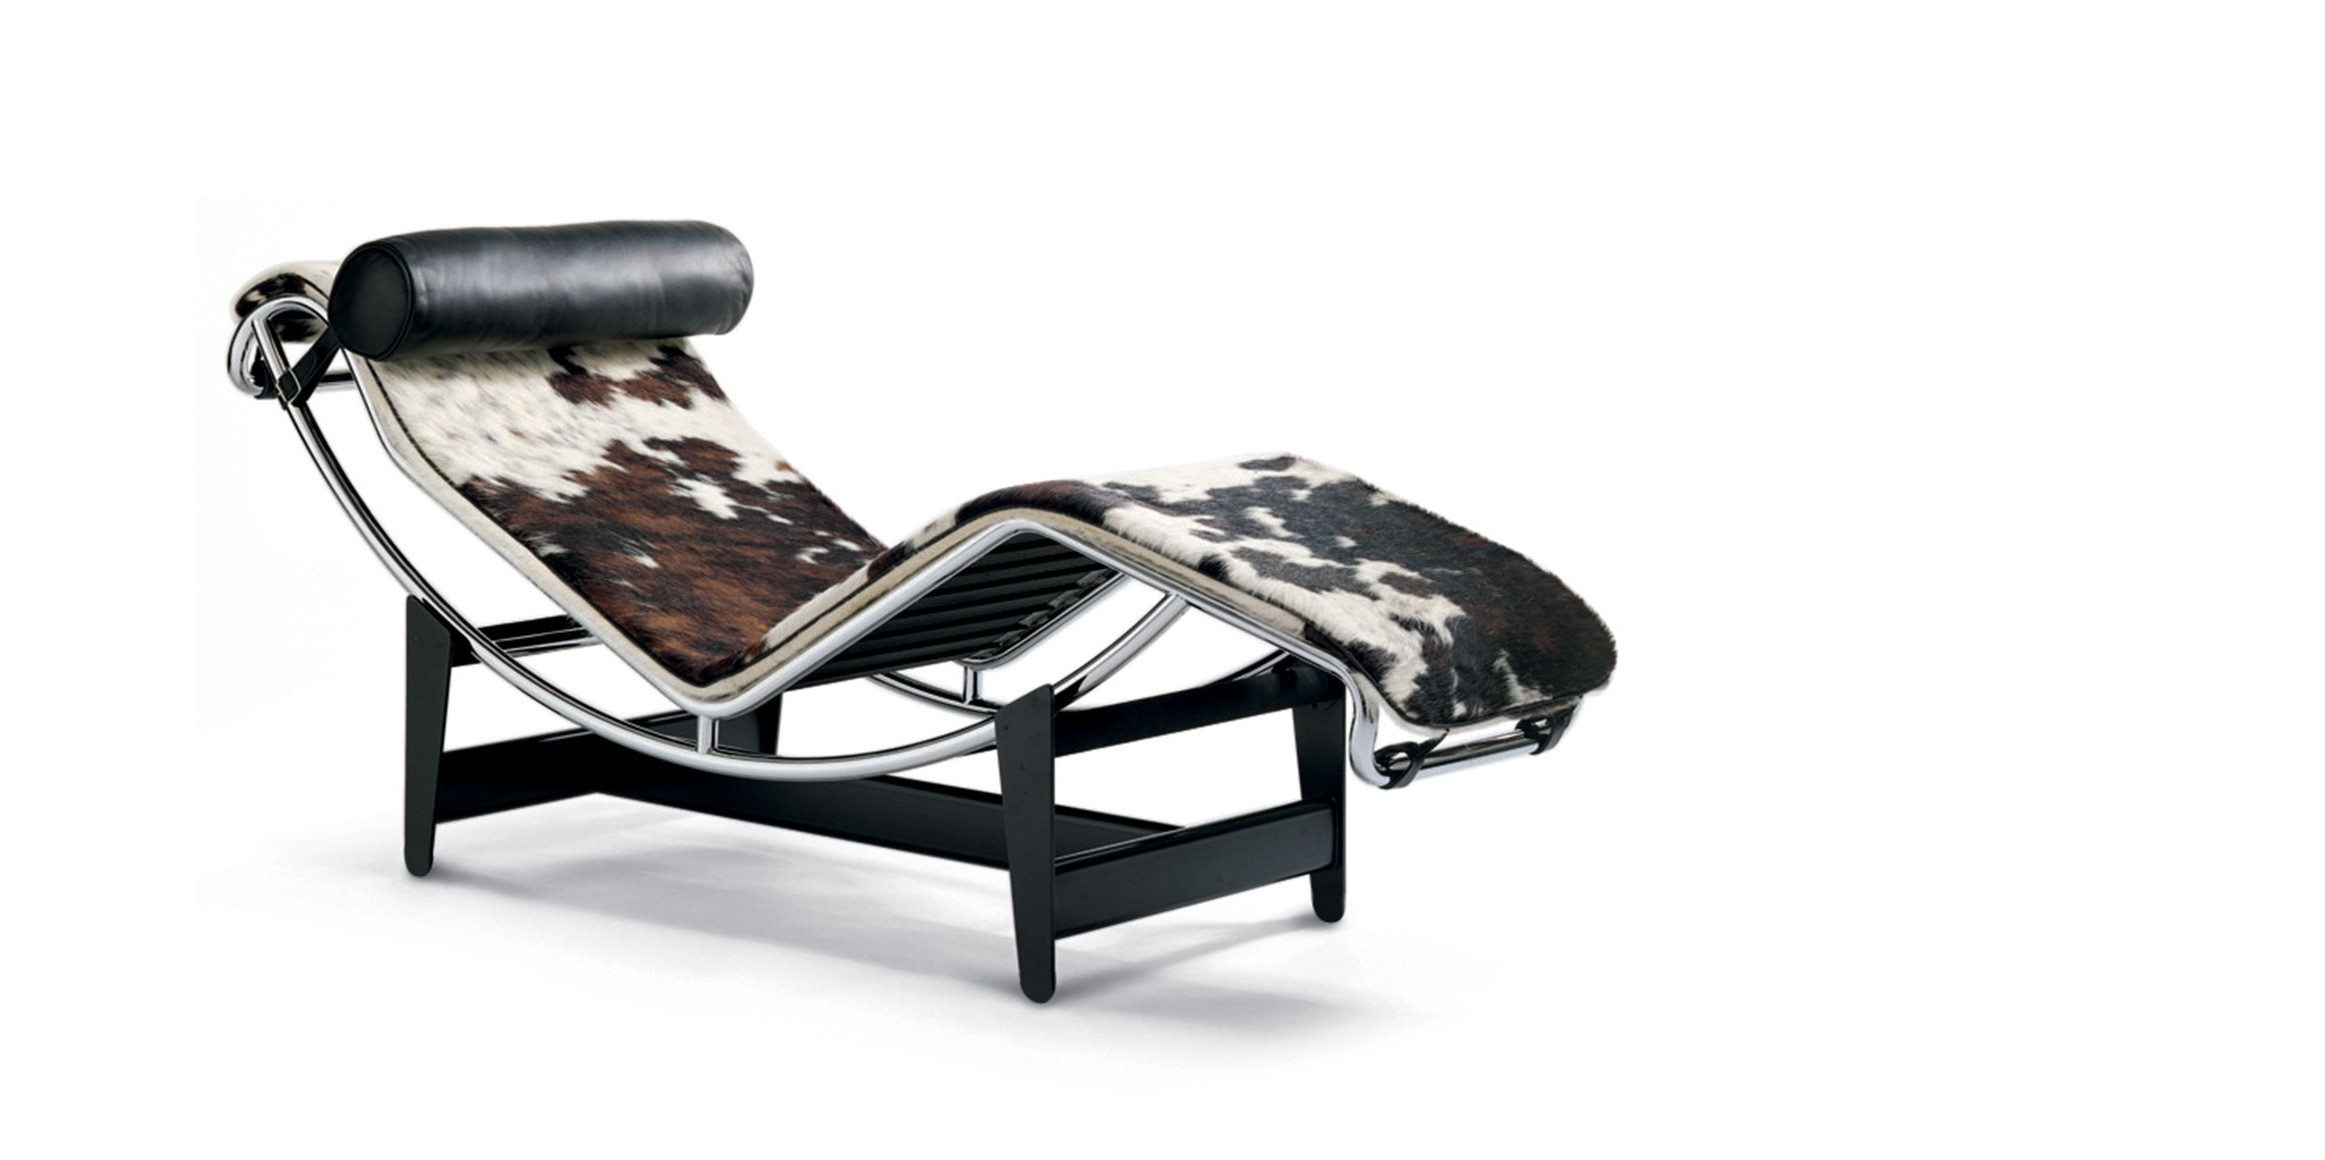 Chaise longue relax interieur lounge chair in chrome for Chaise longue interieur